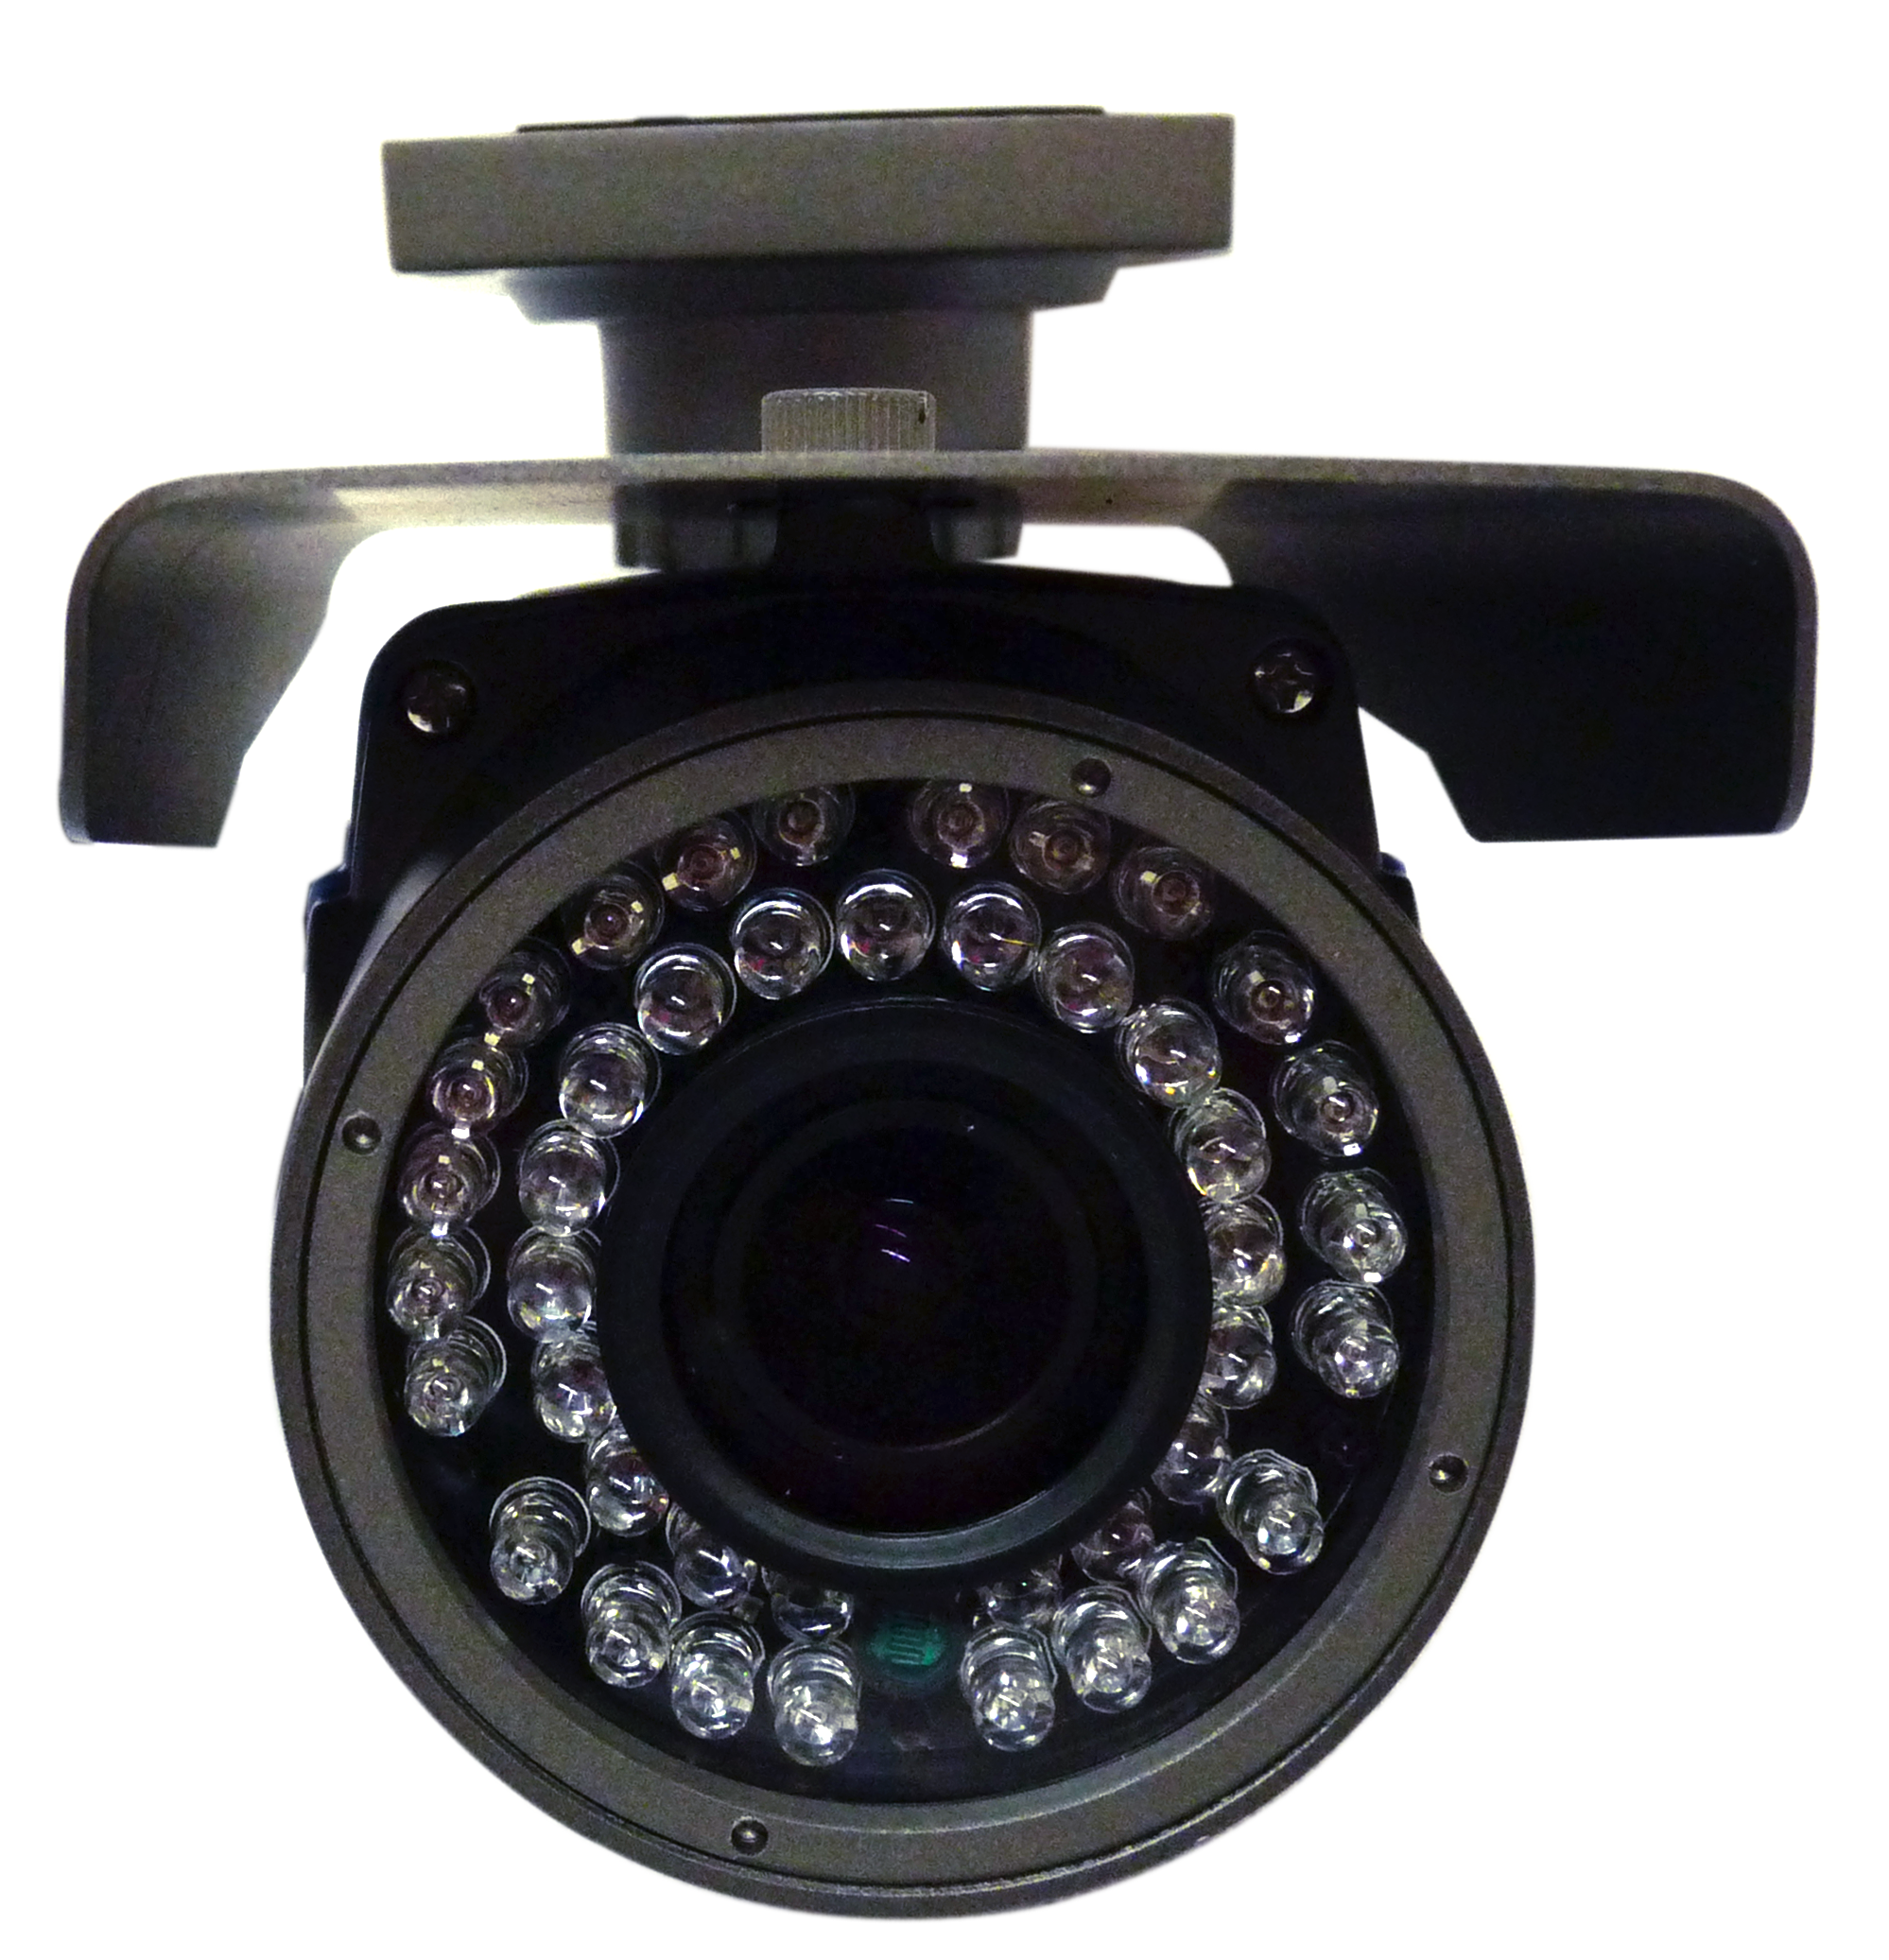 Image for DBS 809G - 700TVL CCTV Bullet Security Camera - 1/3'' Sony Super HAD CCD II